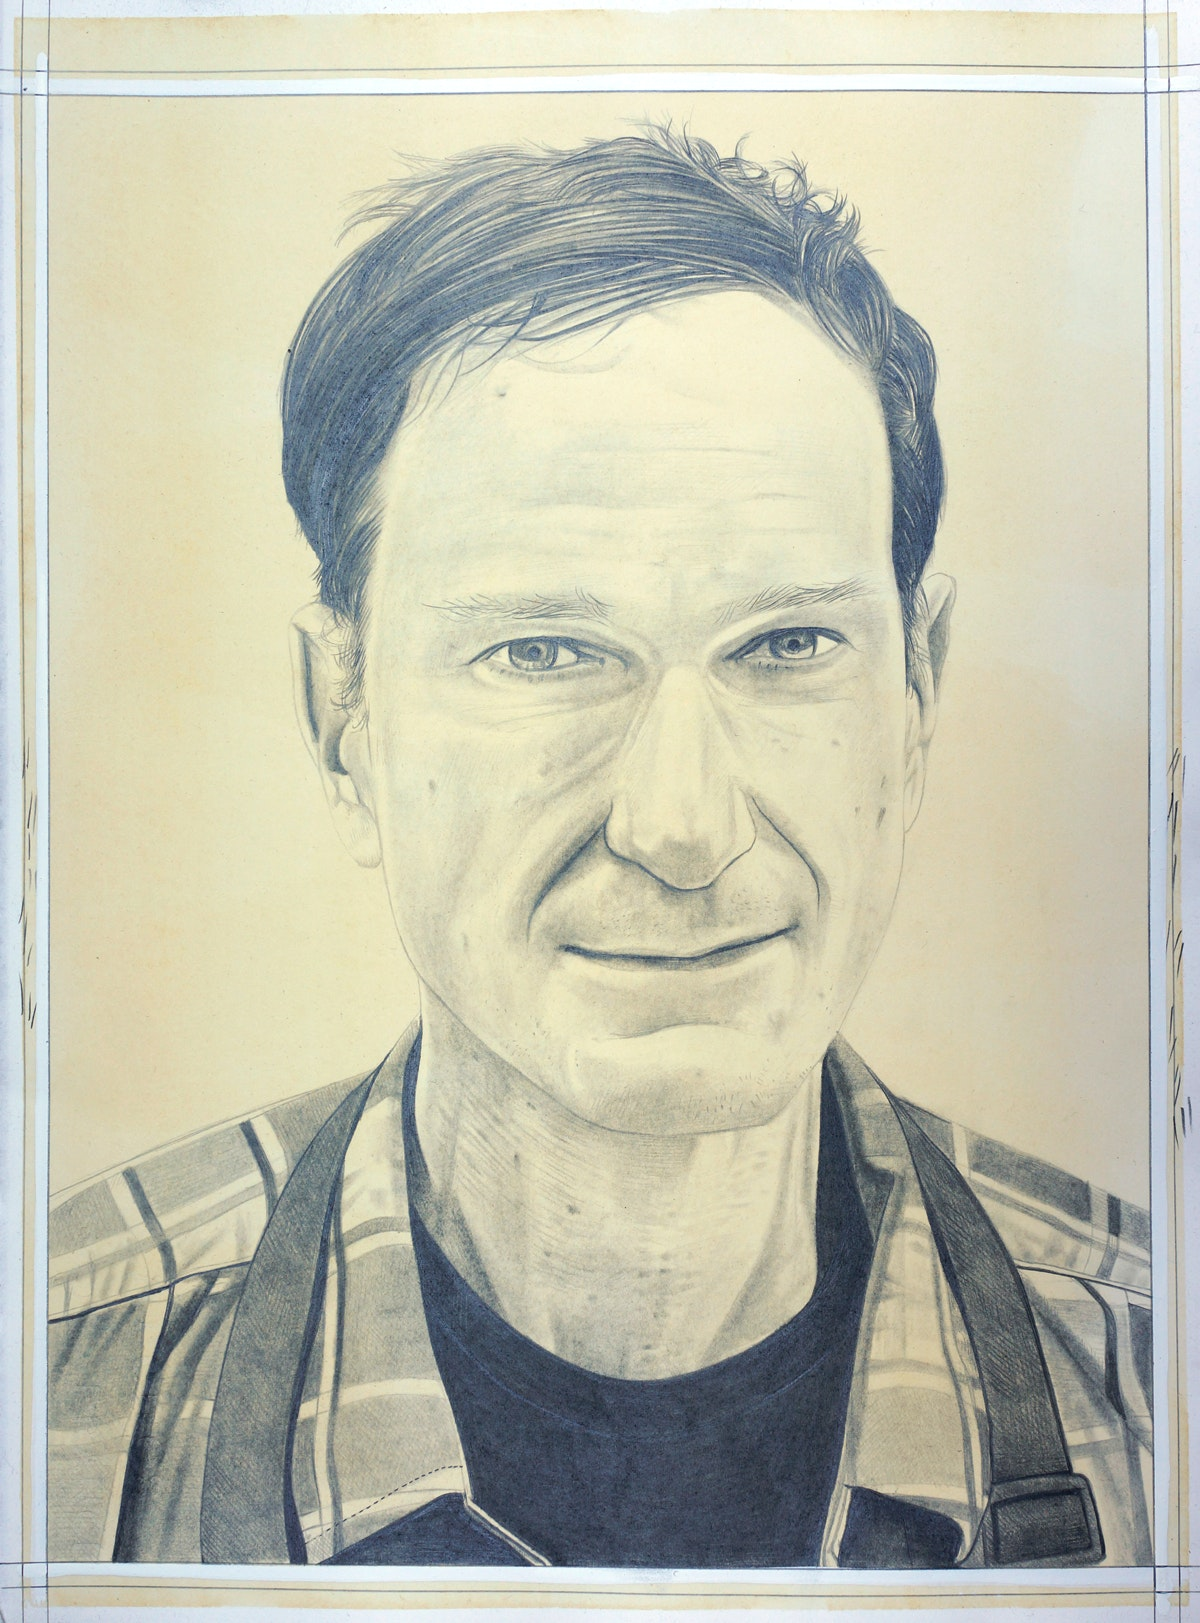 Portrait of Josh Smith, pencil on paper by Phong Bui.